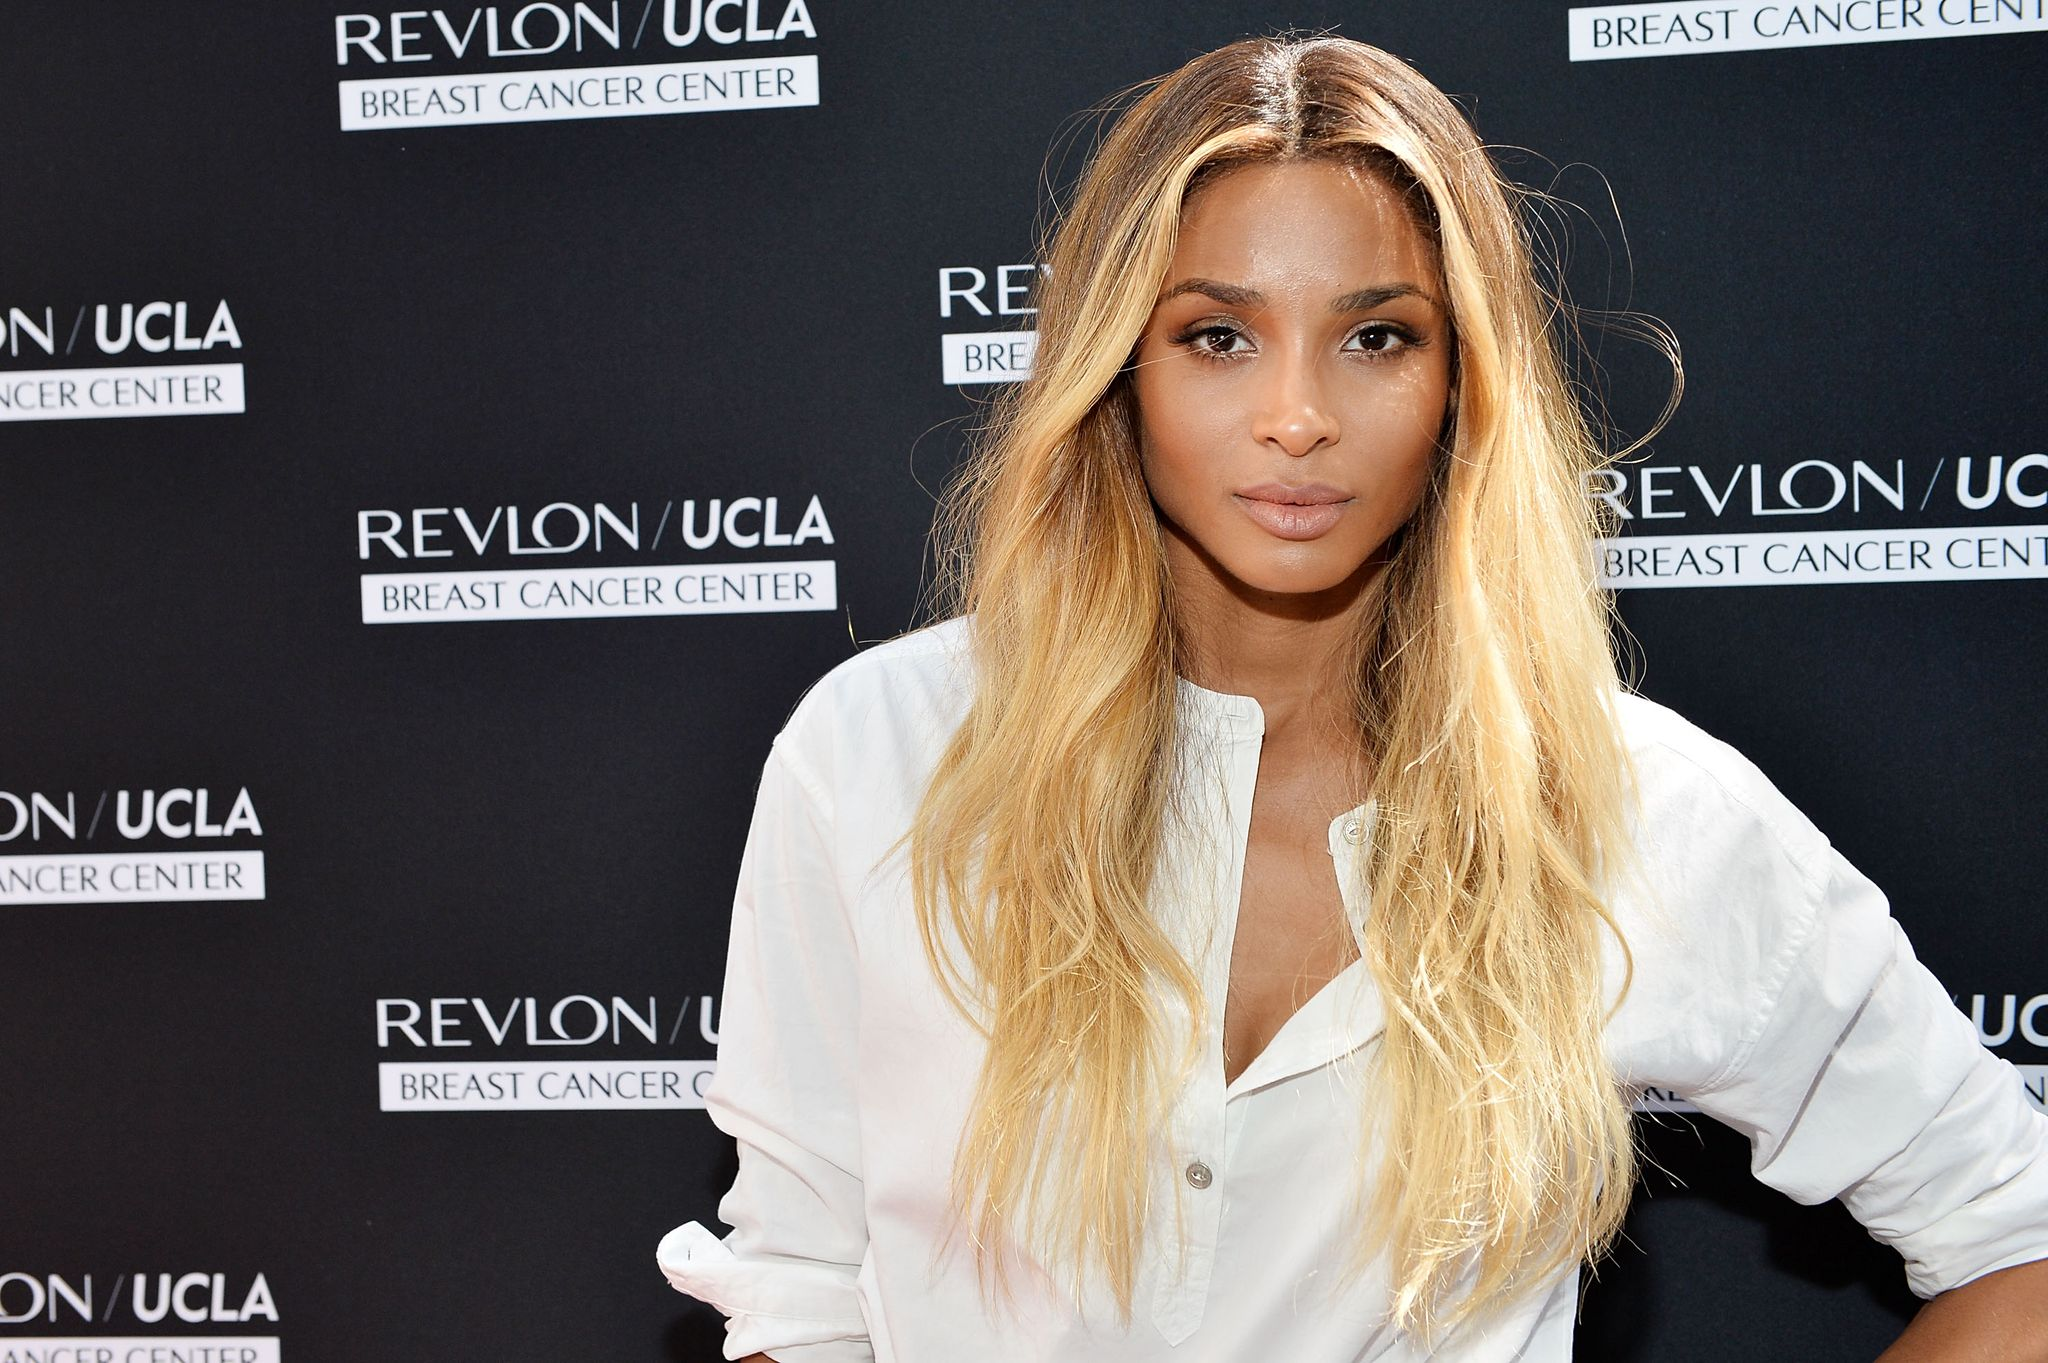 Ciara celebrates ground-breaking achievements in cancer research at the Chateau Marmont on September 27, 2016 in Los Angeles, California   Photo: Getty Images